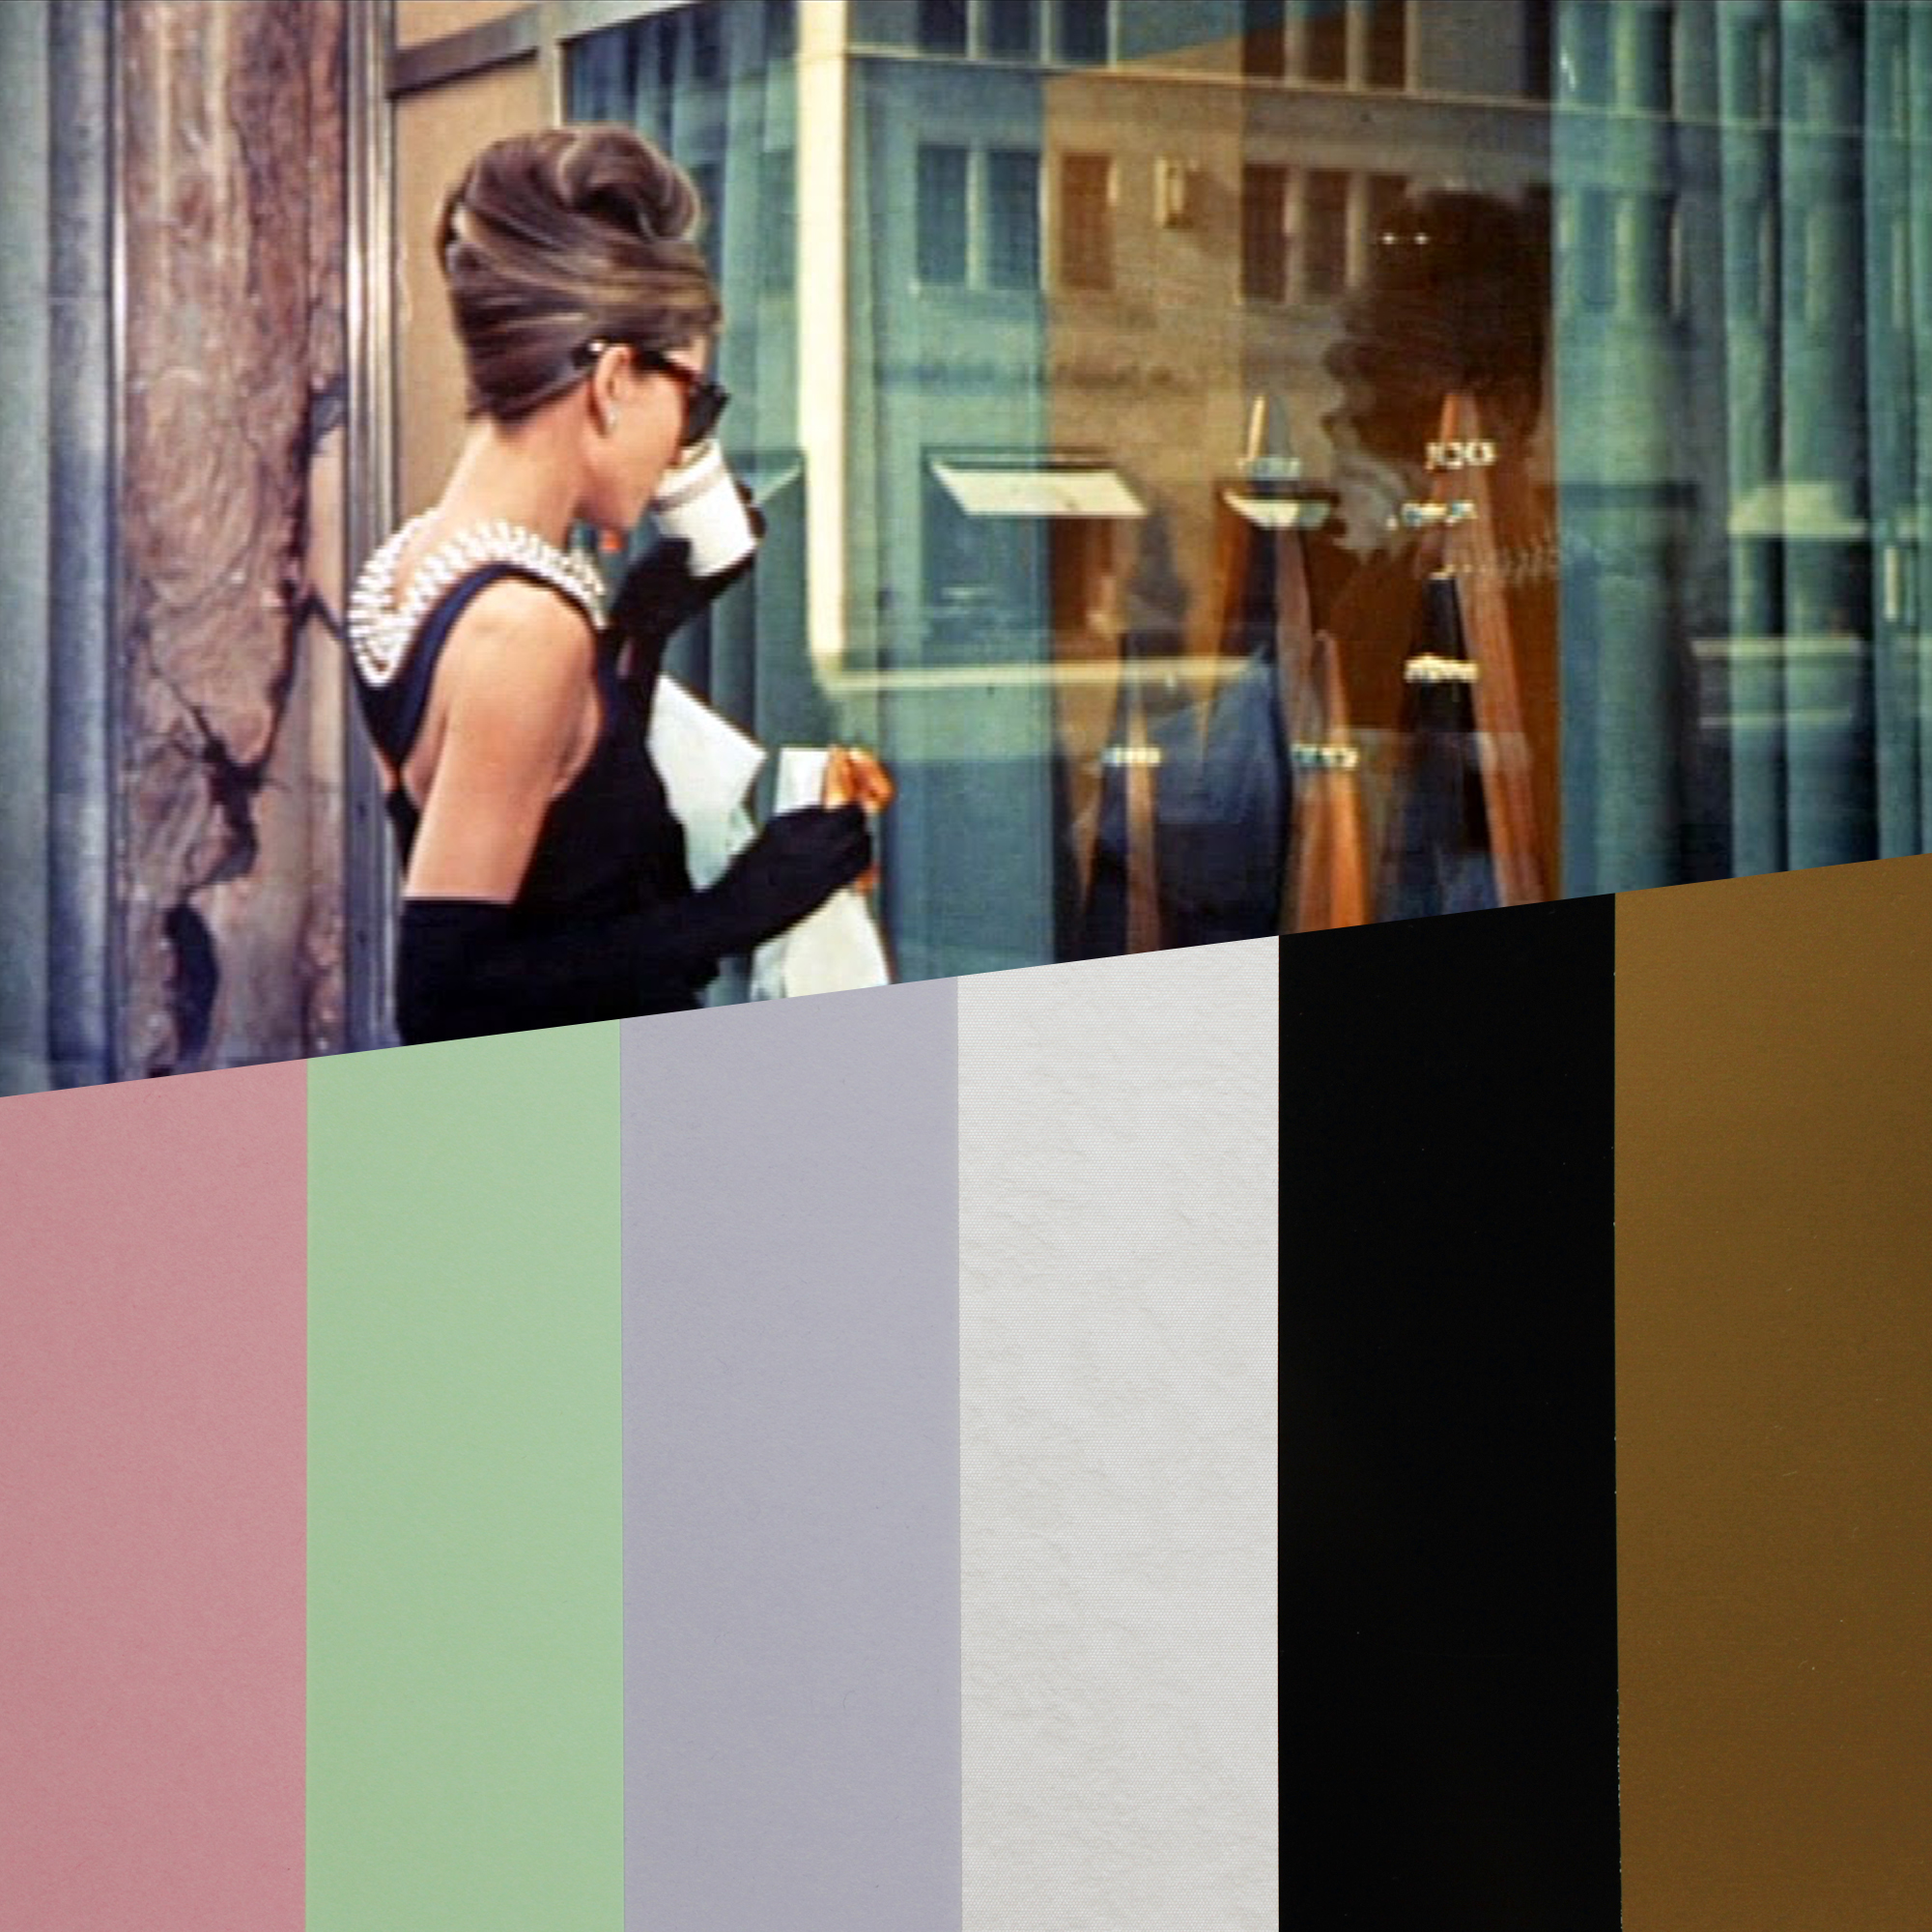 design papers collections inspired by an iconic movie scene - breakfast at tiffanys